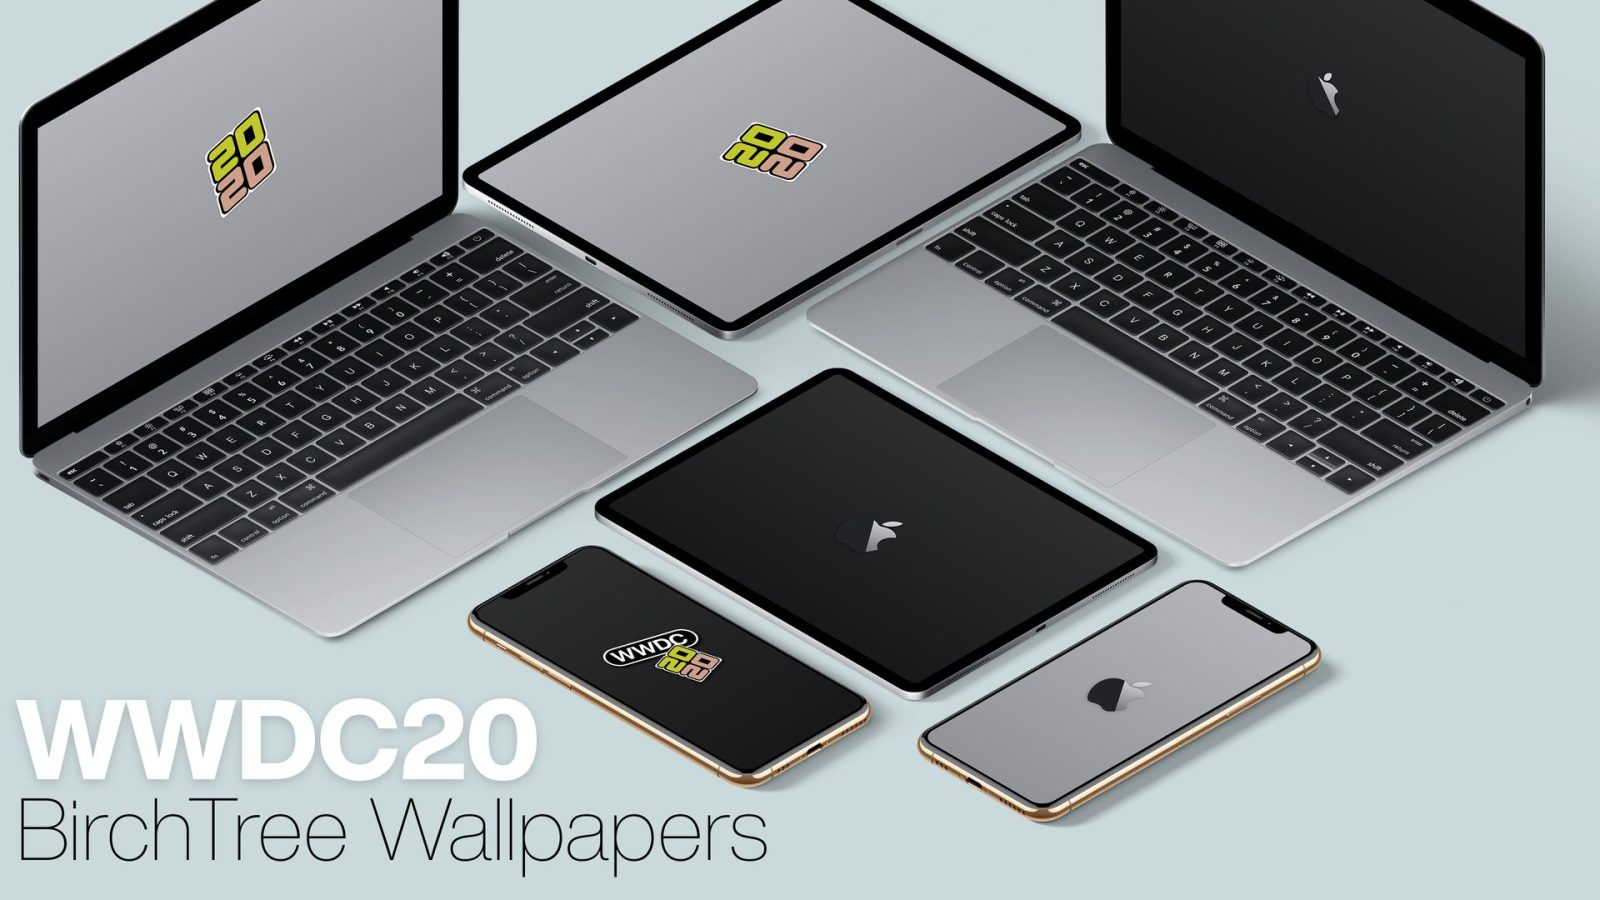 Prepare For Wwdc 2020 With These Apple Inspired Wallpapers For